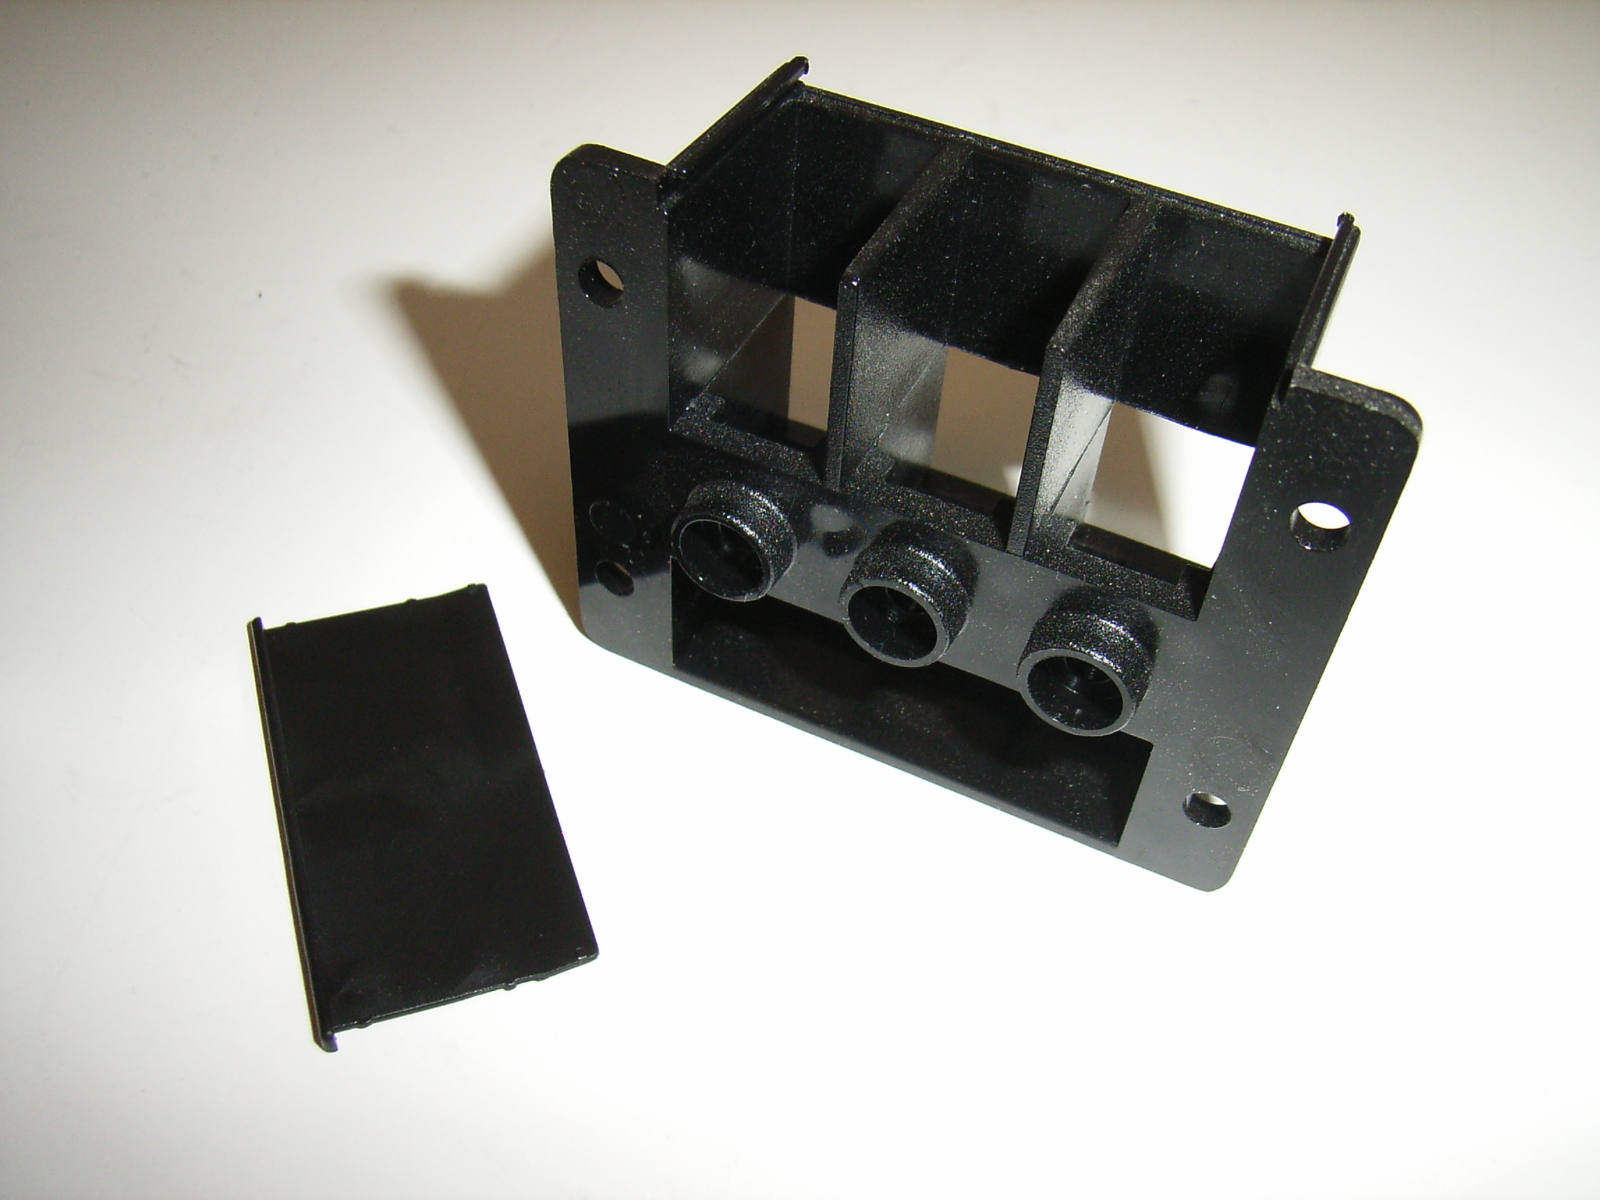 Cover kit for TU power connector